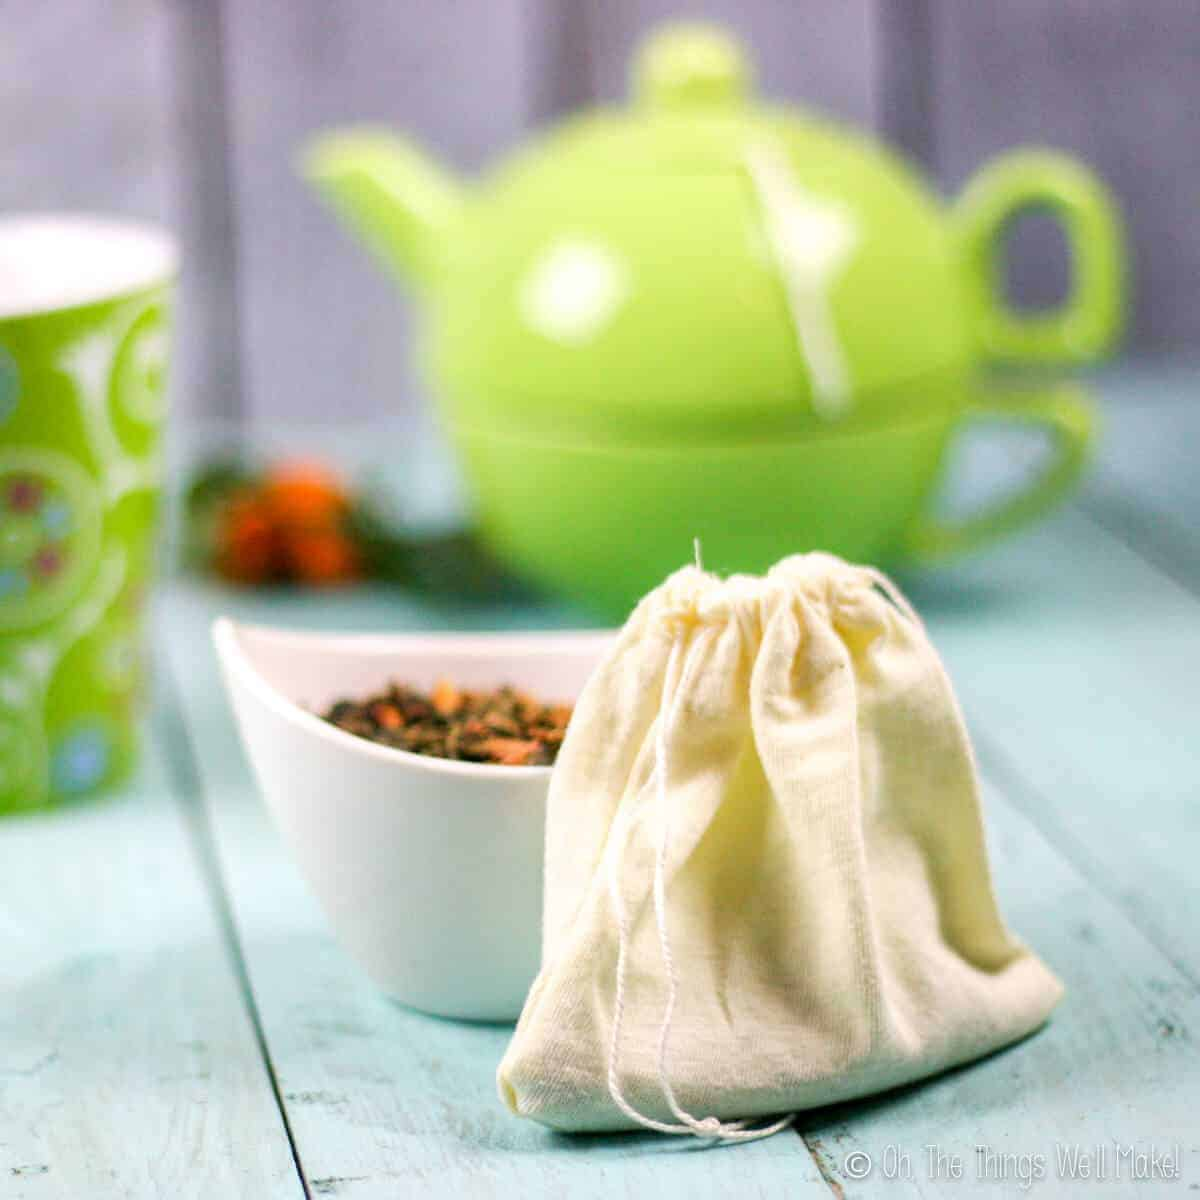 Closeup of a homemade cloth teabag with a small bowl behind it filled with a loose tea. In the background, there is a green teapot and a teacup.